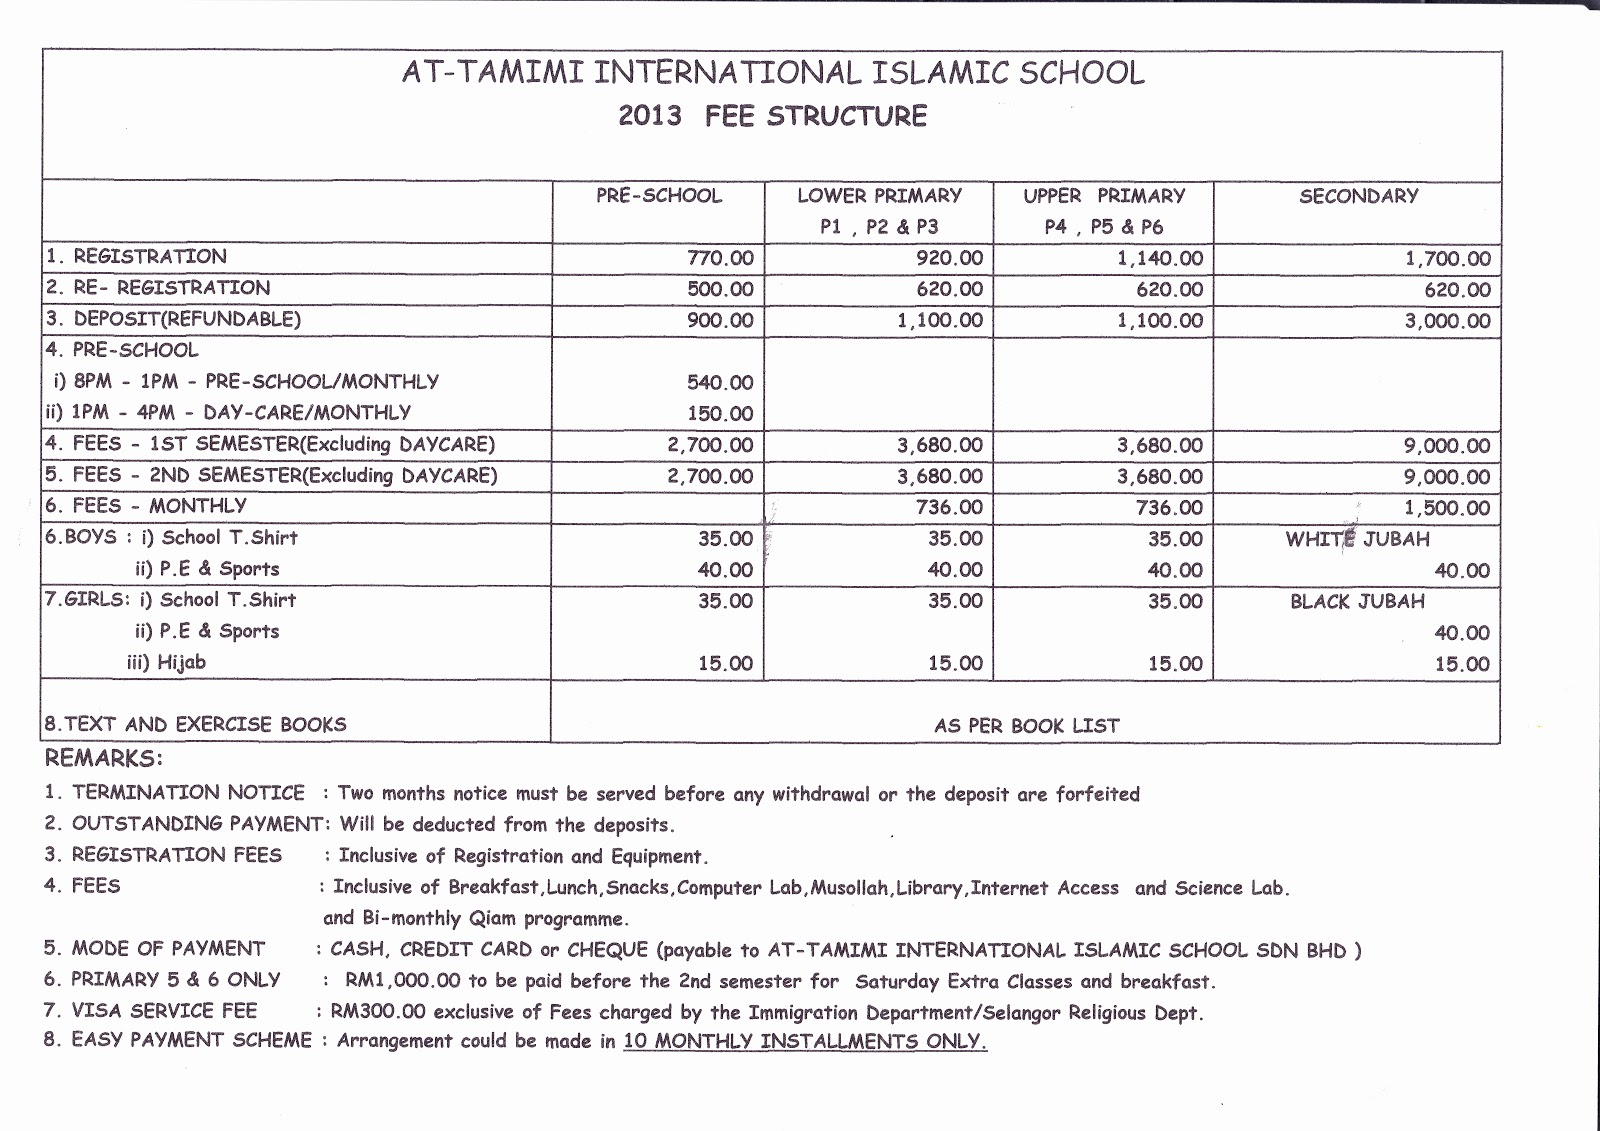 EXAM TIME TABLE - PRE SCHOOL TO SECONDARY | AT-TAMIMI